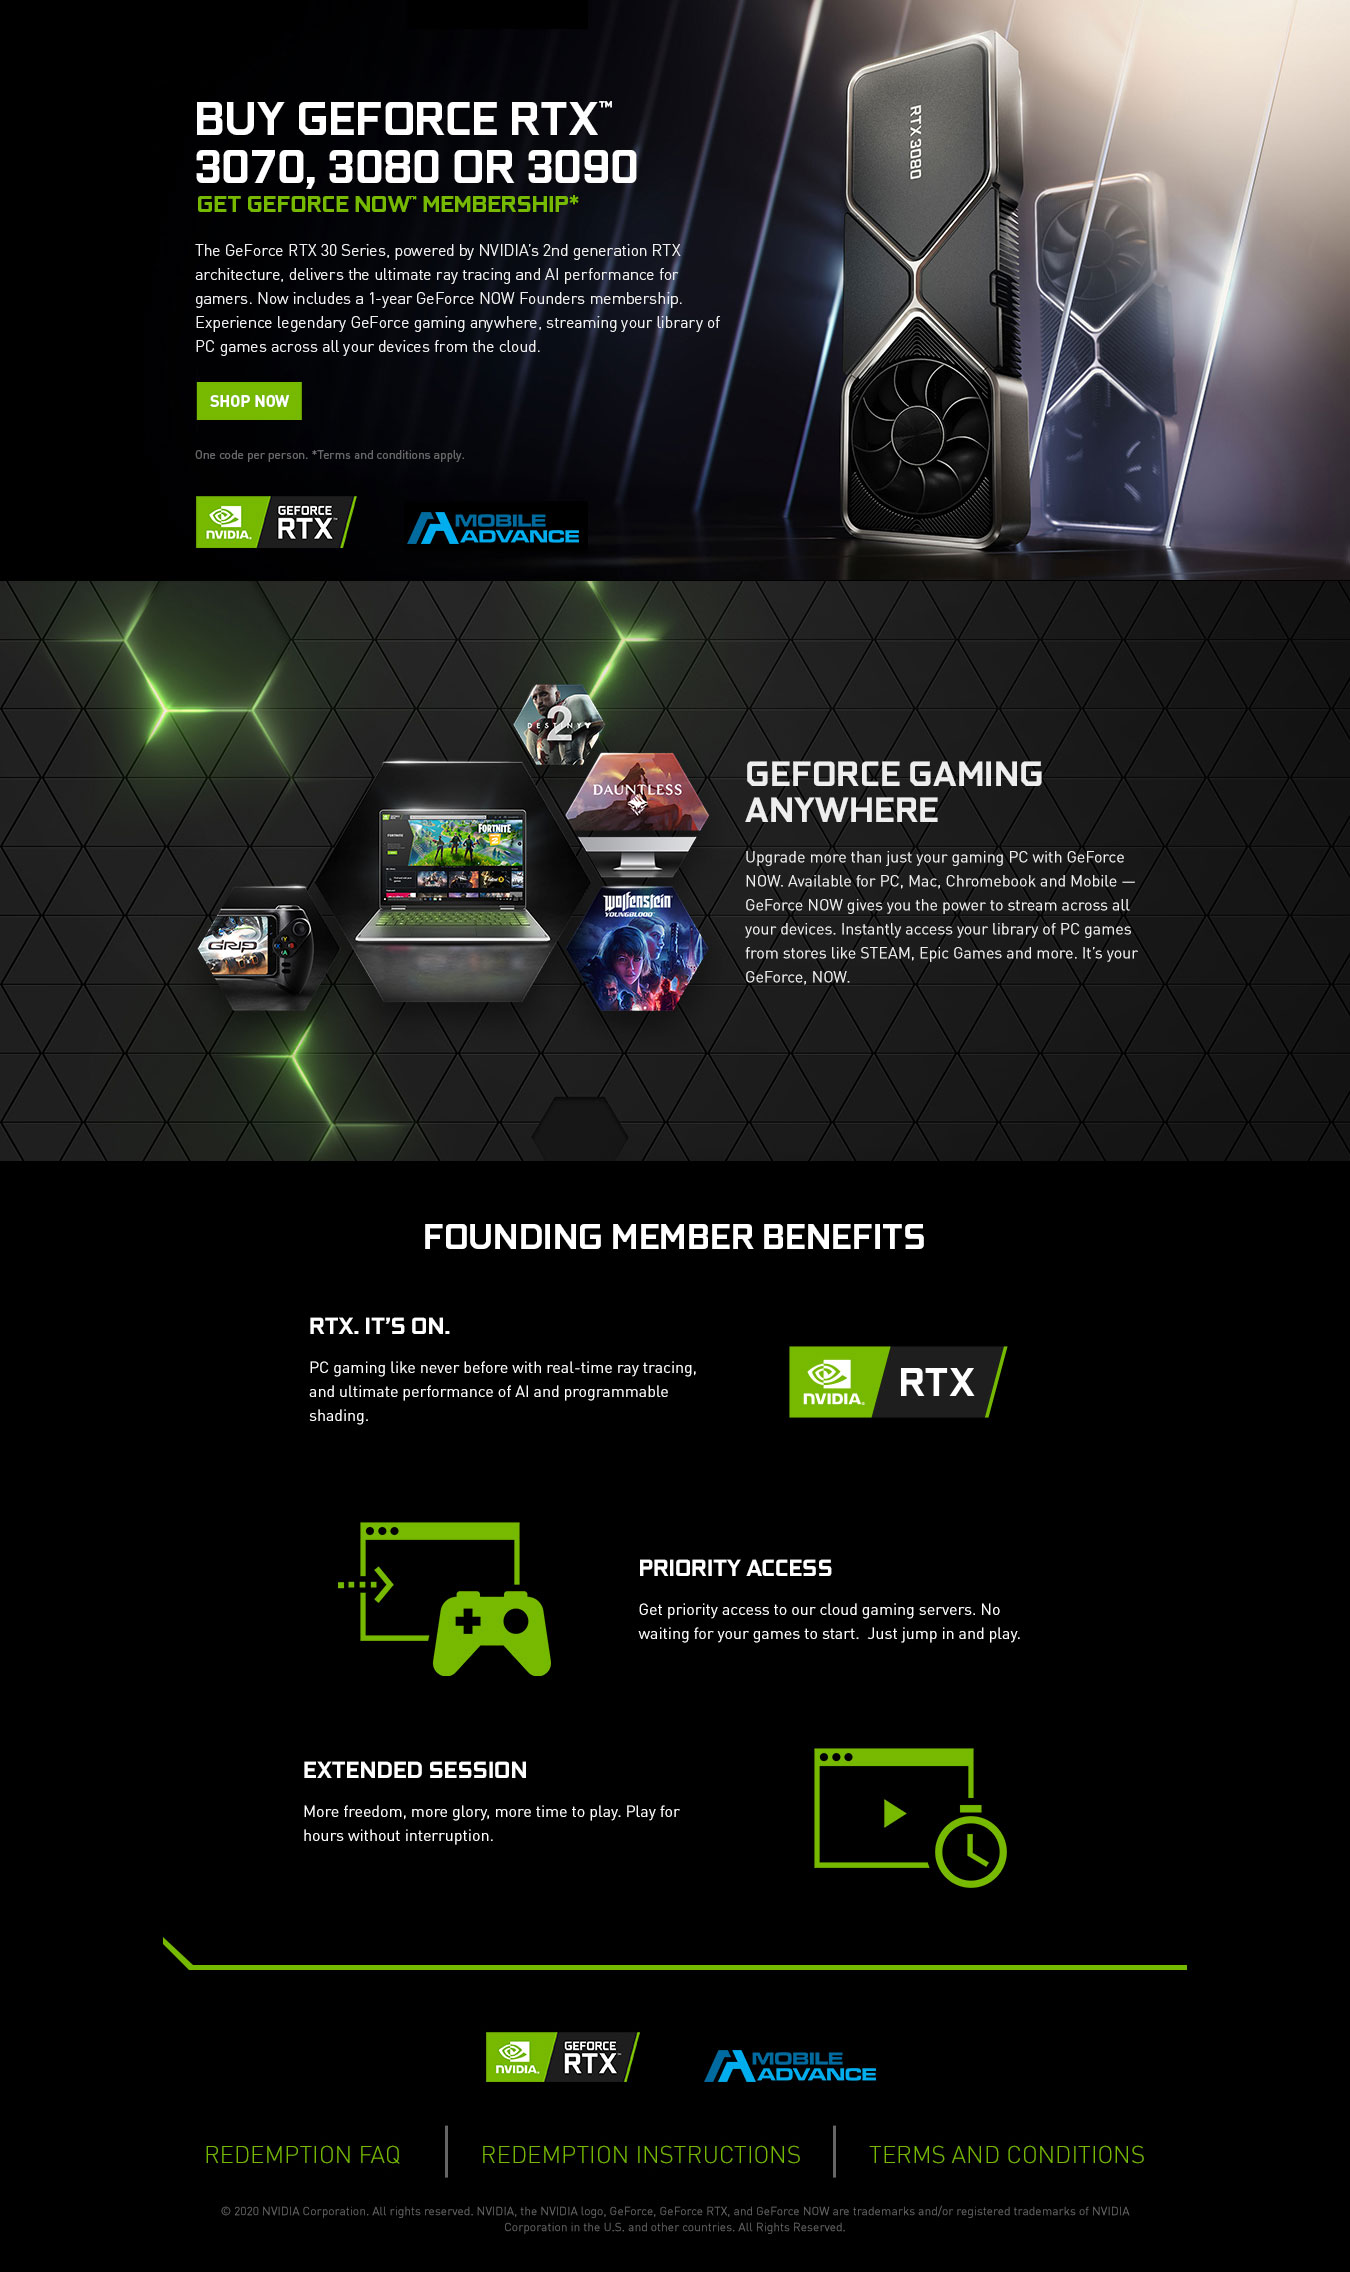 geforce-ampere-gfn-1yr-offer-partner-lp-desktop.jpg